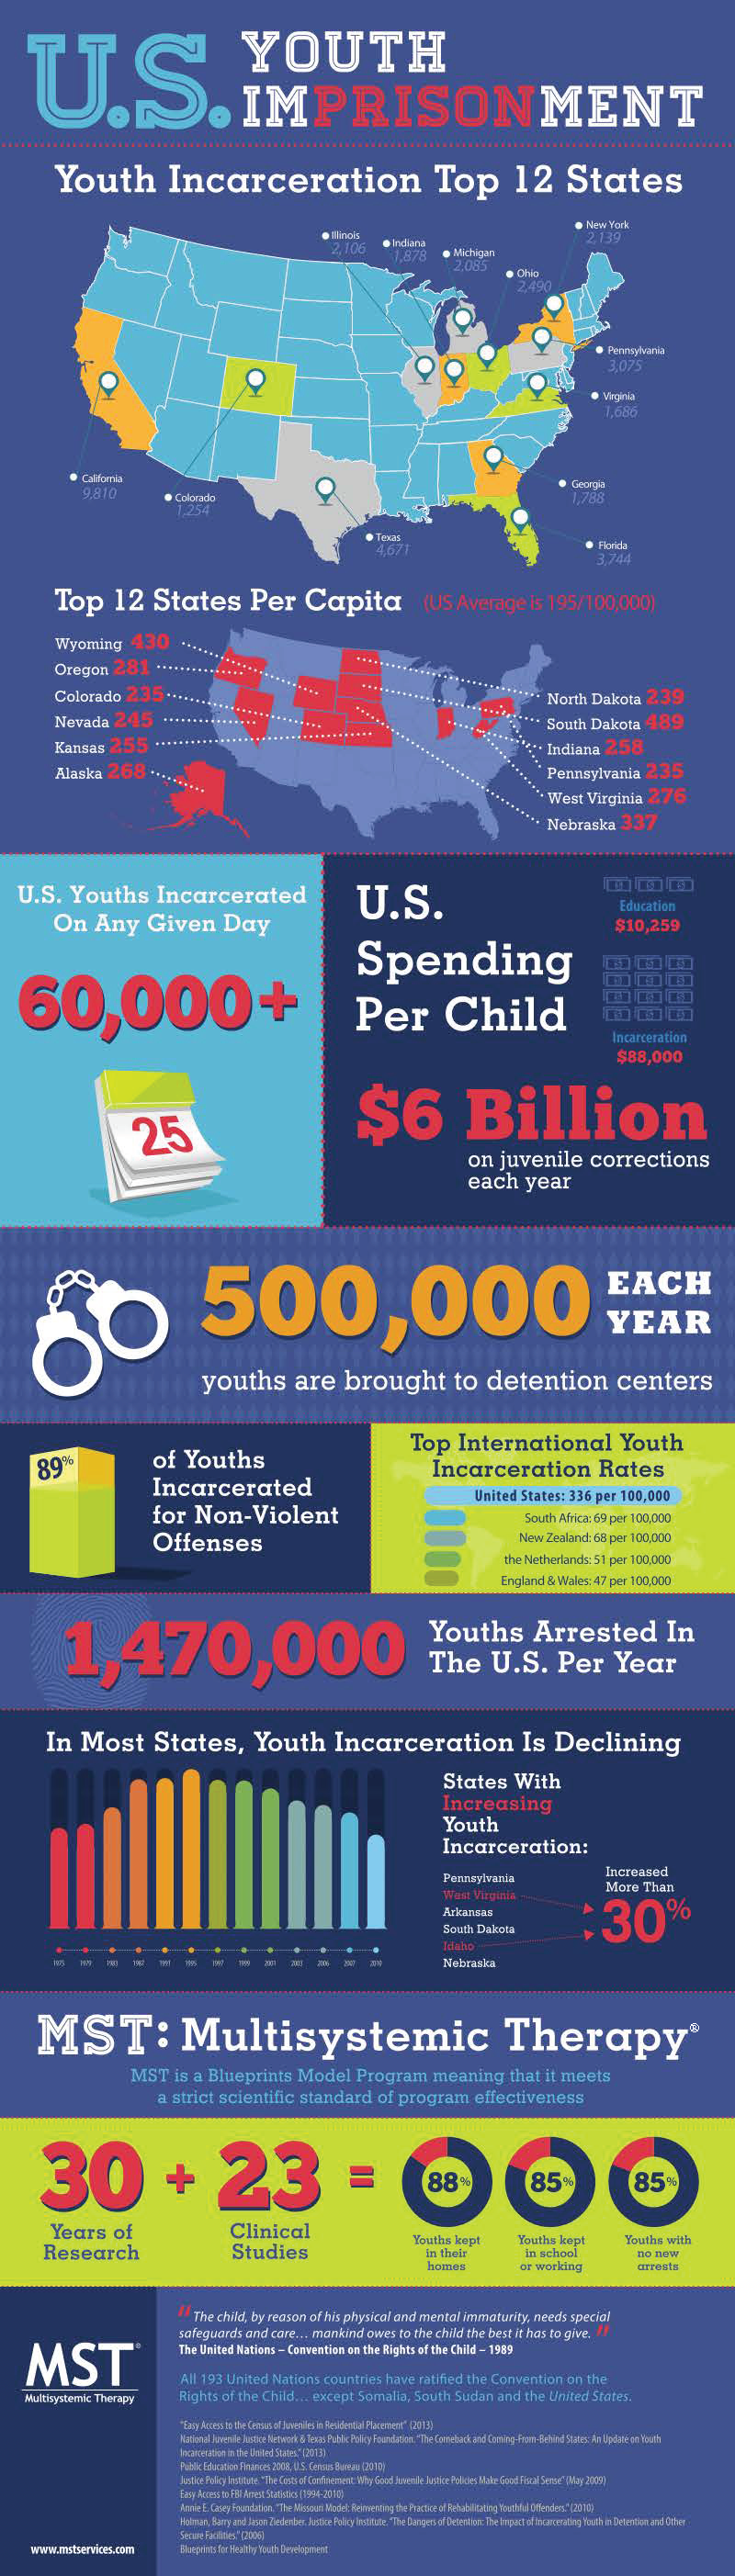 juvenile-justice_infographic_print_final_outlines_070214